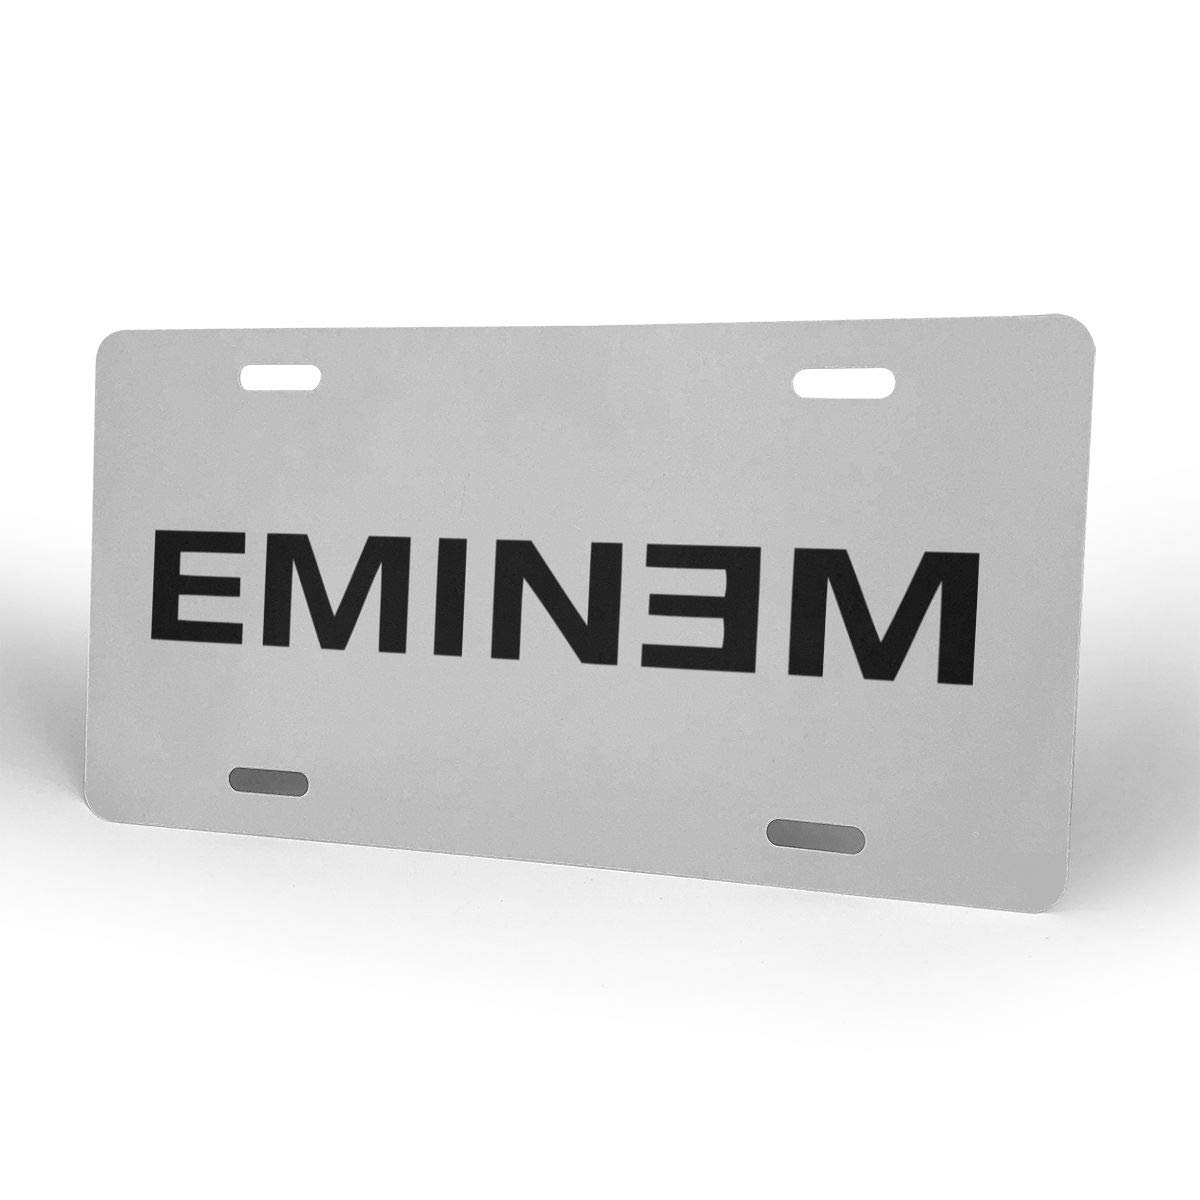 Aluminum License Plate Car Tag 6 x 12 for Your Car